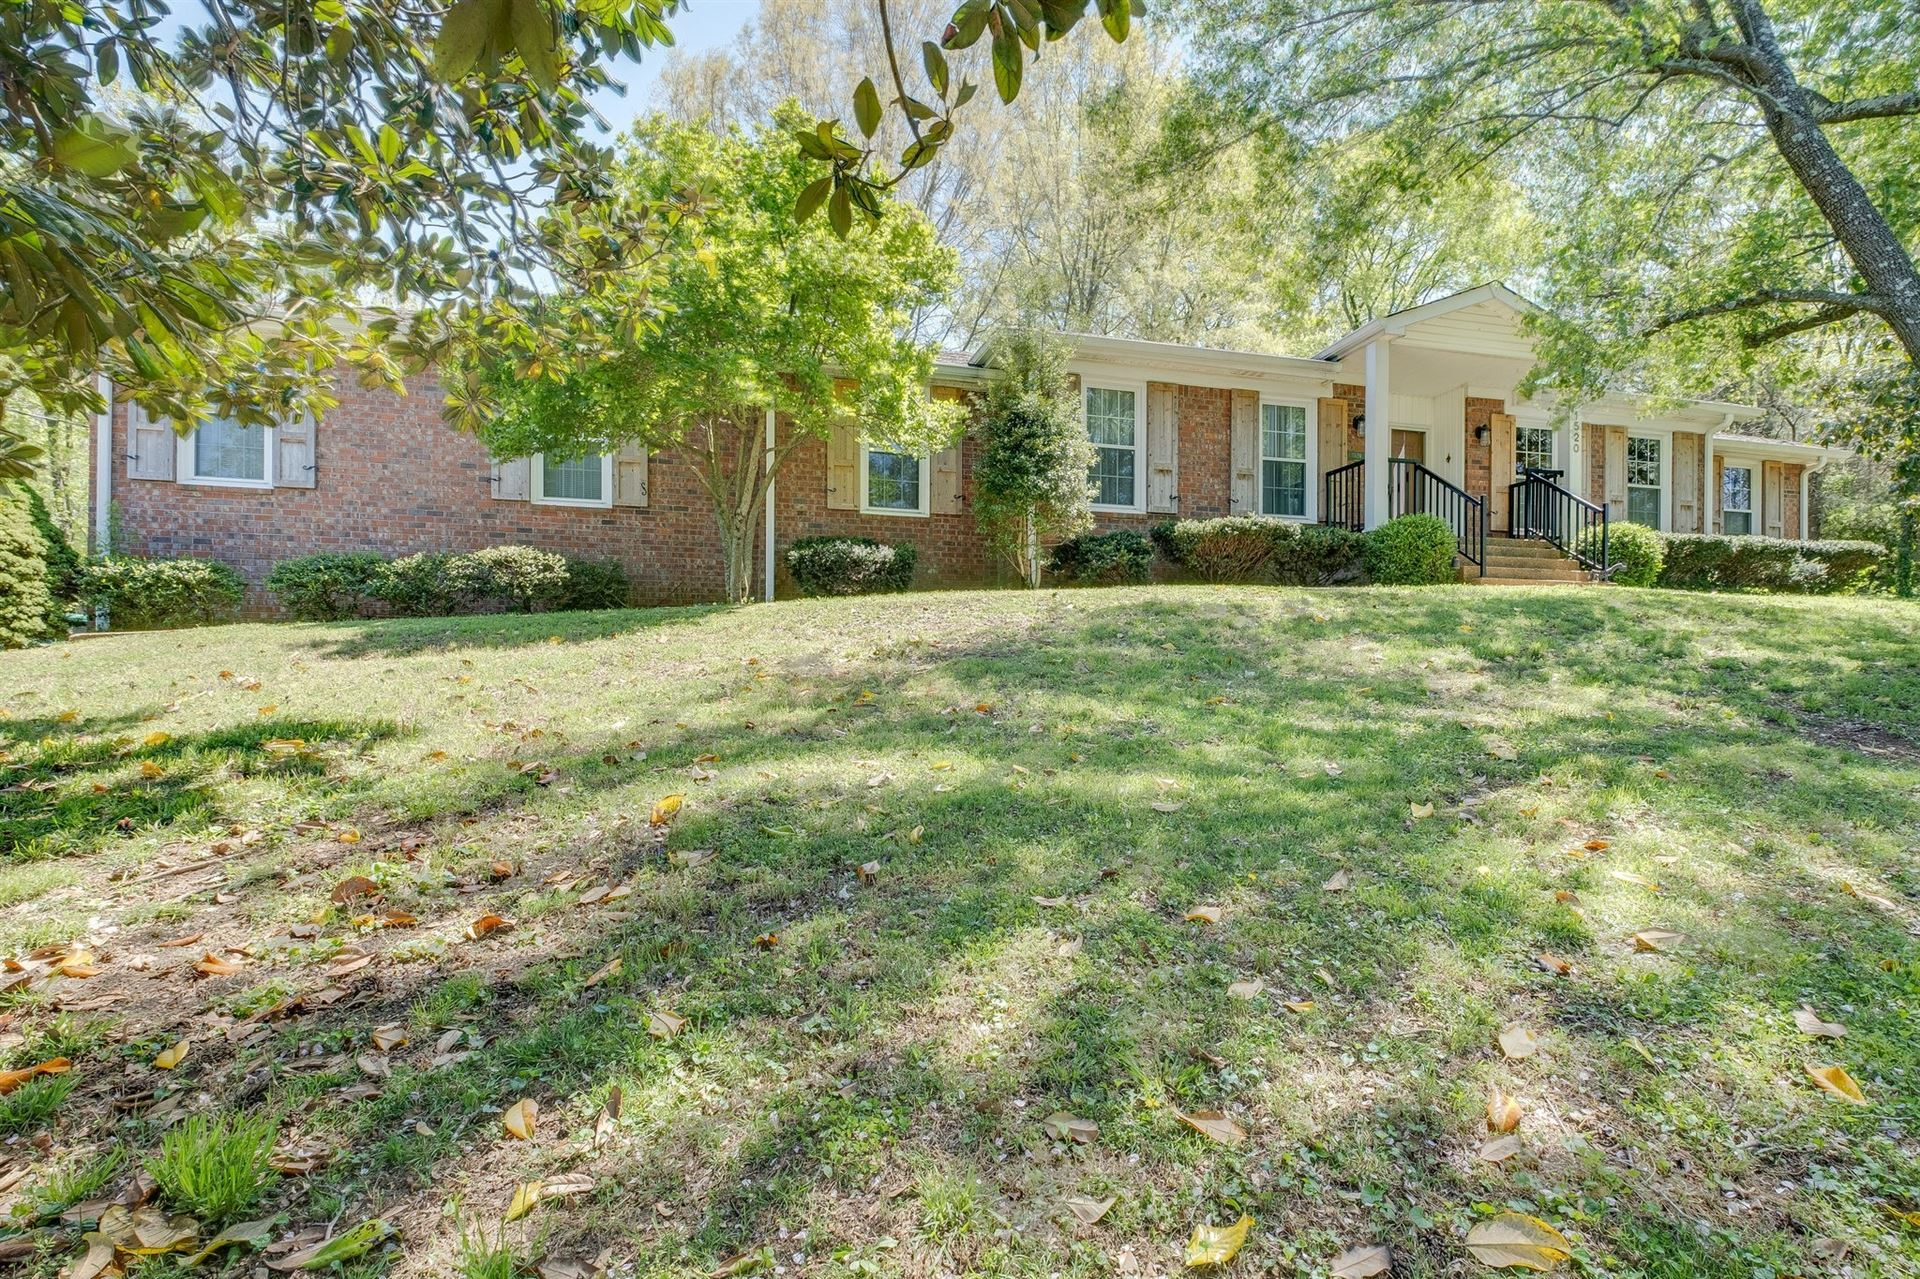 Photo of 1520 Puryear Pl, Brentwood, TN 37027 (MLS # 2150095)